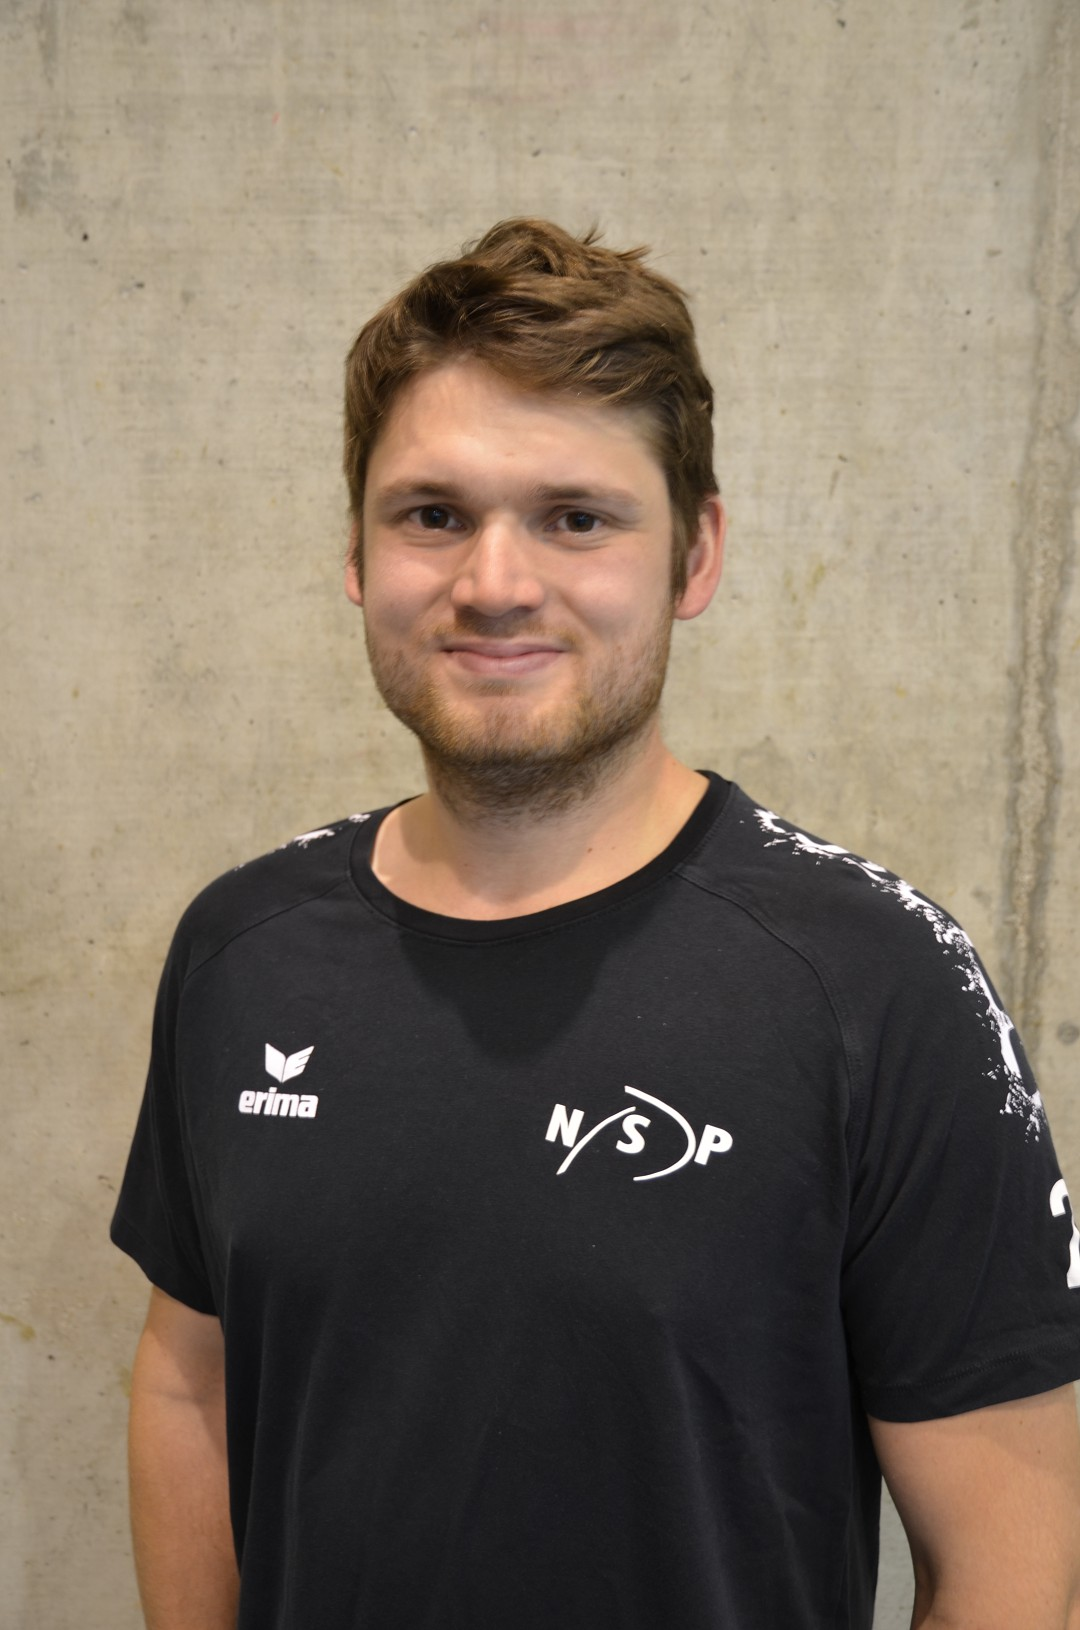 2019 Handball Billo Sven